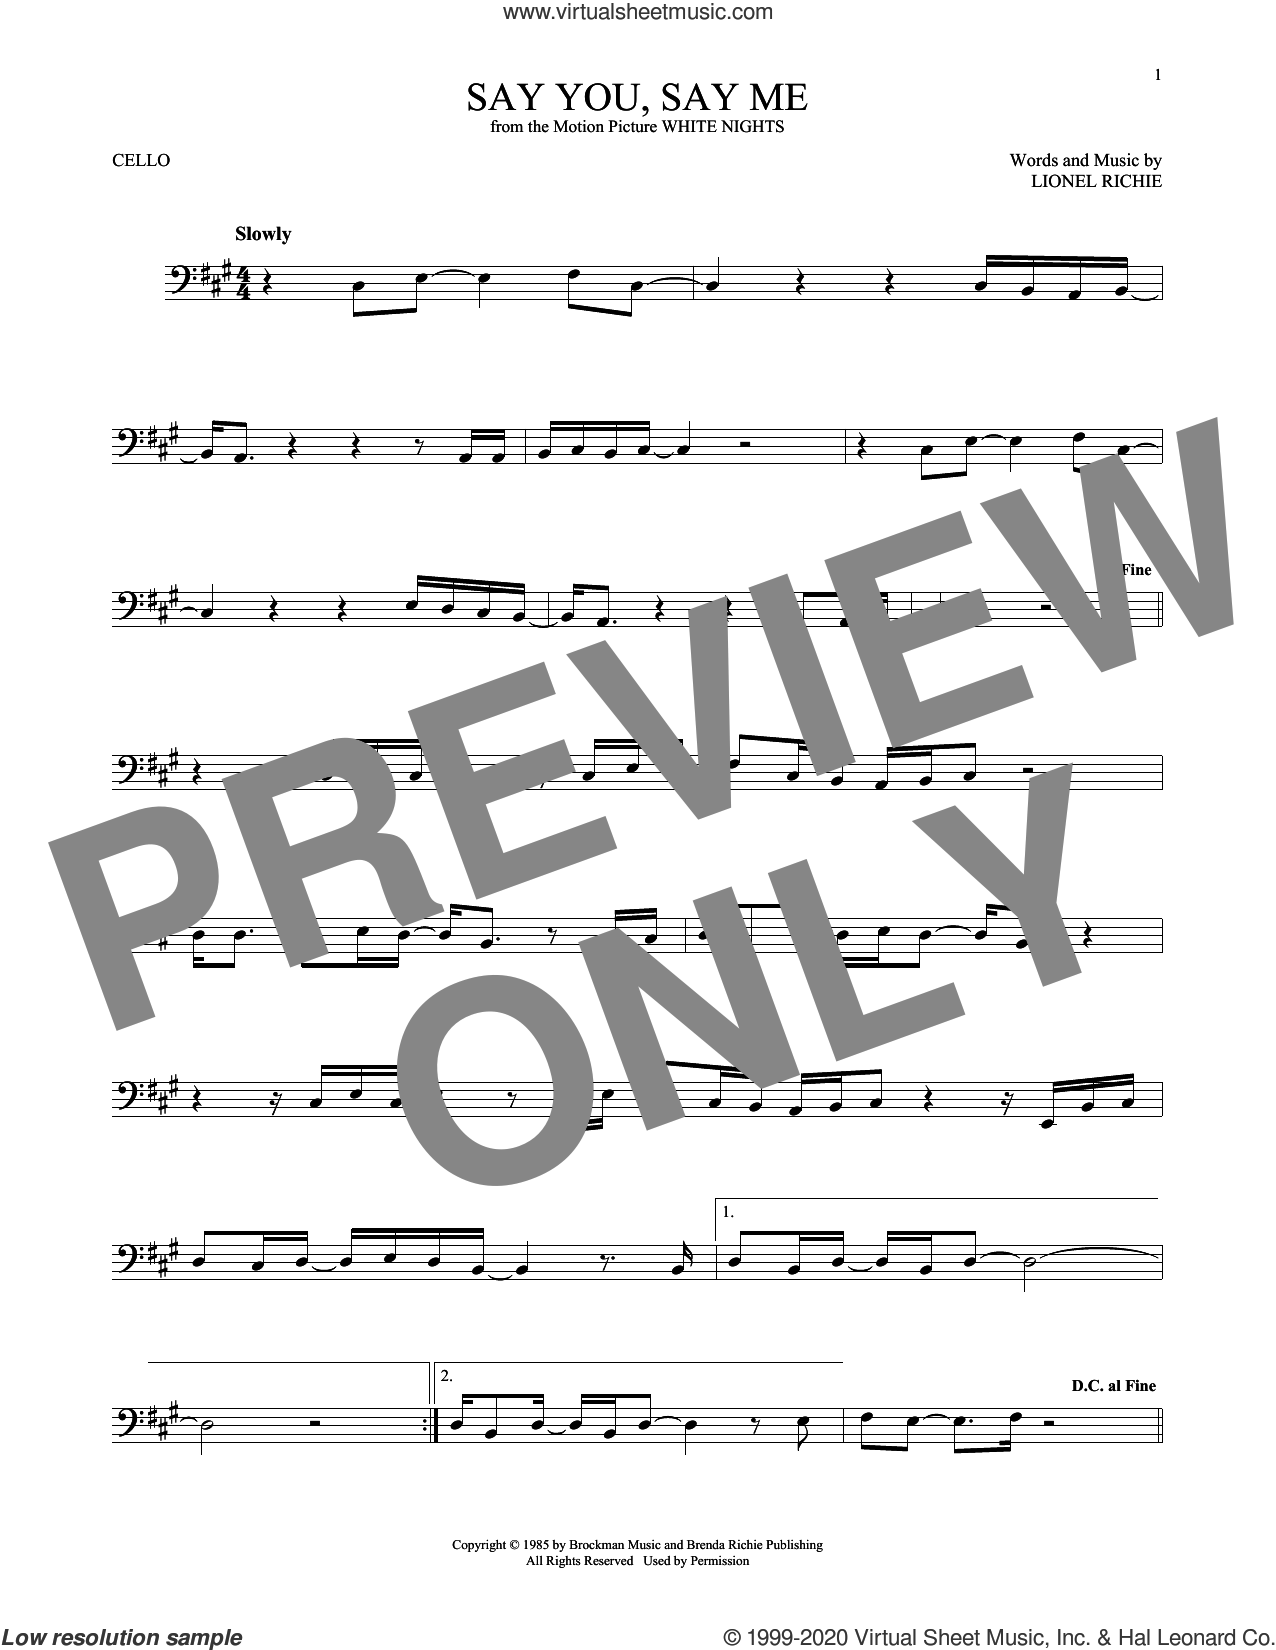 Say You, Say Me sheet music for cello solo by Lionel Richie, intermediate skill level